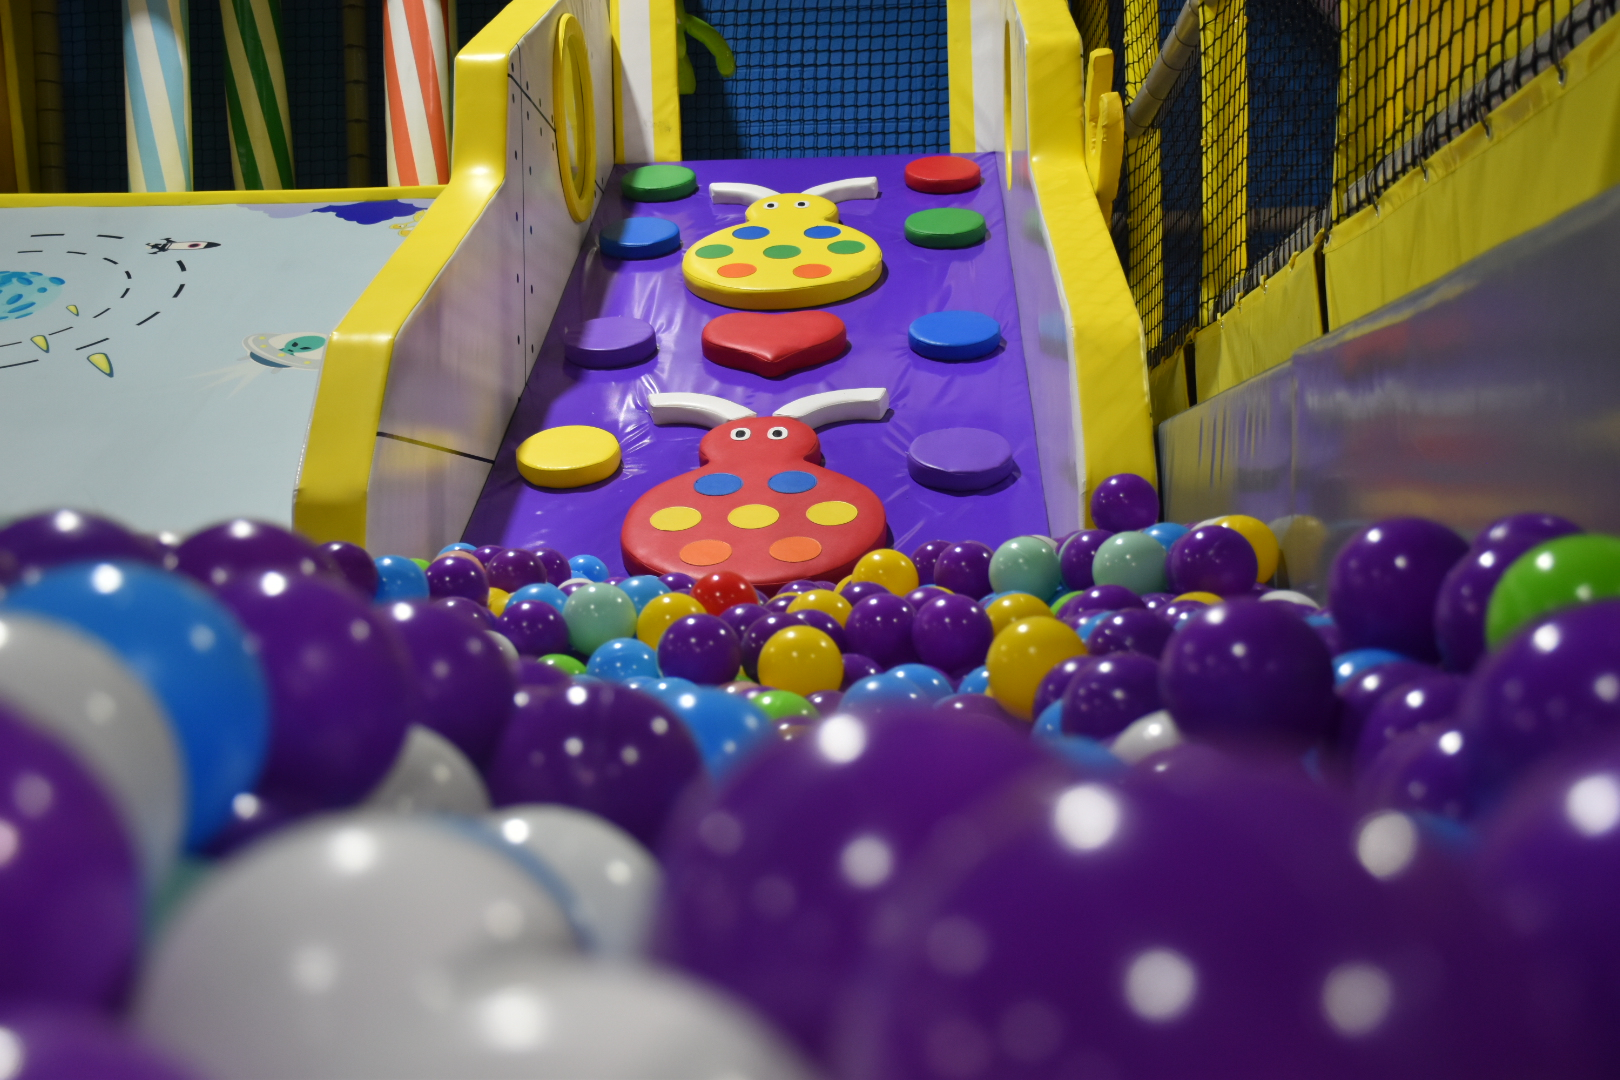 Dedicated toddler play area - Ready for even the smallest party guests